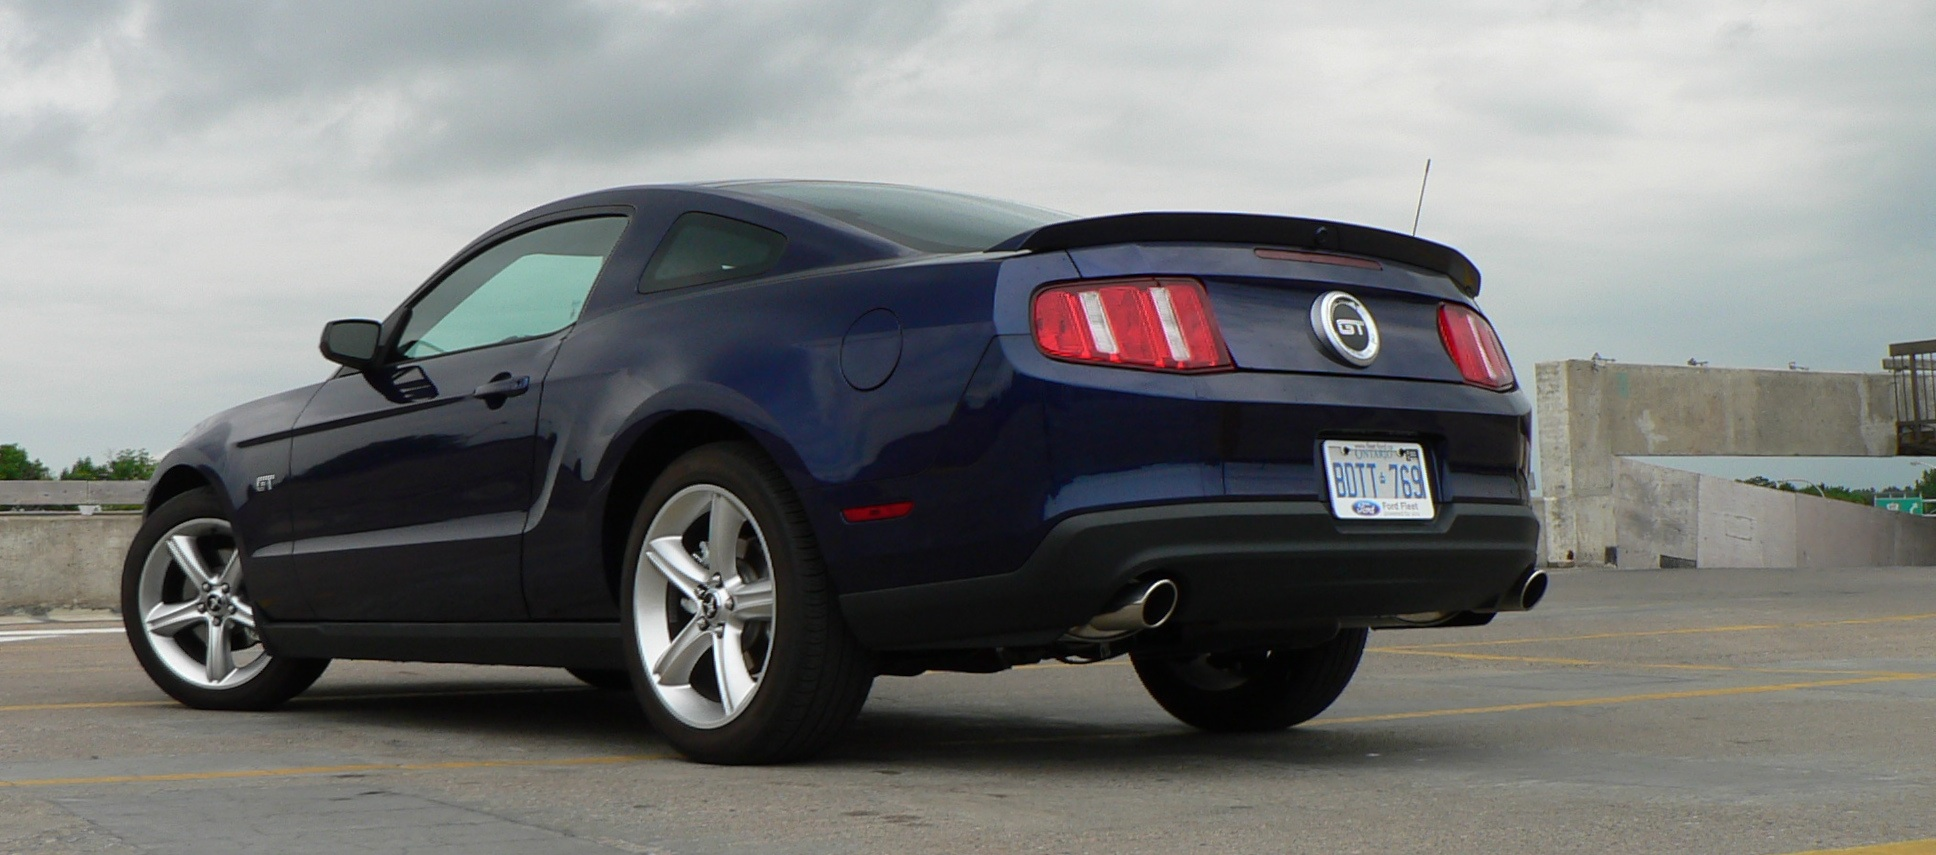 Calabogie Race Track >> Road Test: 2010 Ford Mustang GT : John LeBlanc's straight-six